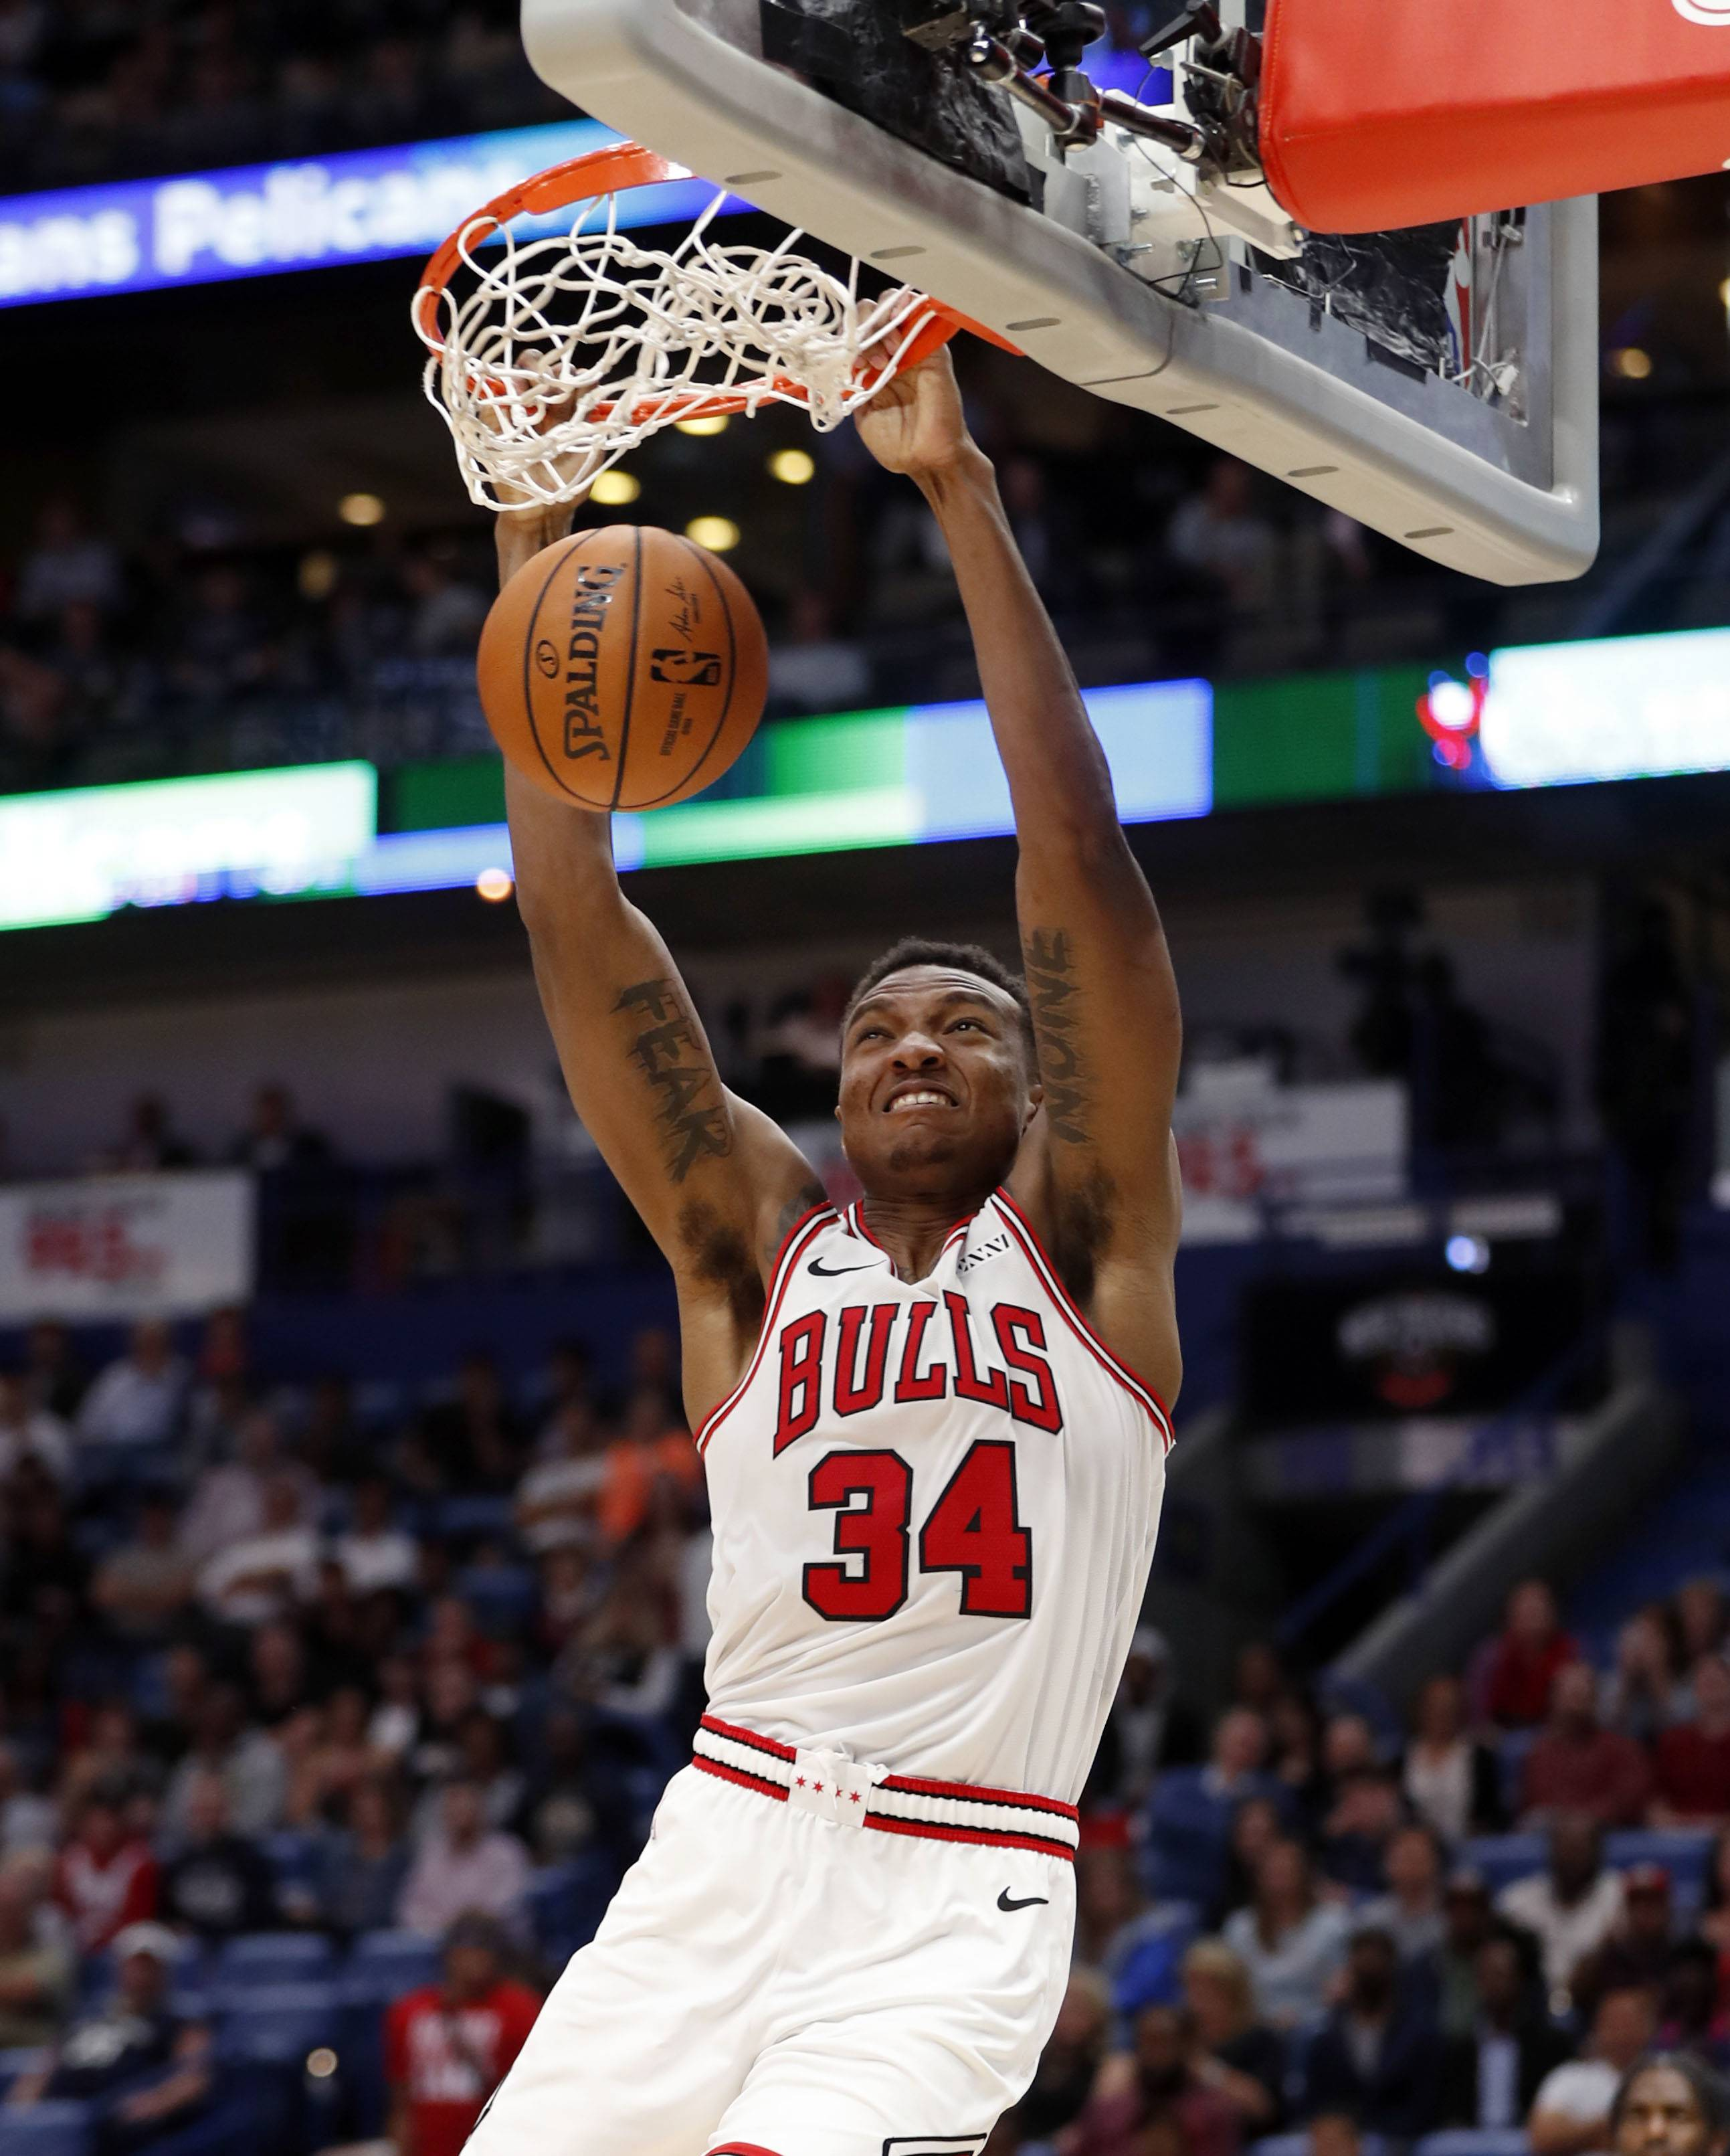 Chicago Bulls forward Wendell Carter Jr. (34) dunks during the second half of an NBA basketball game against the New Orleans Pelicans in New Orleans, Wednesday, Nov. 7, 2018. The Pelicans won 107-98.